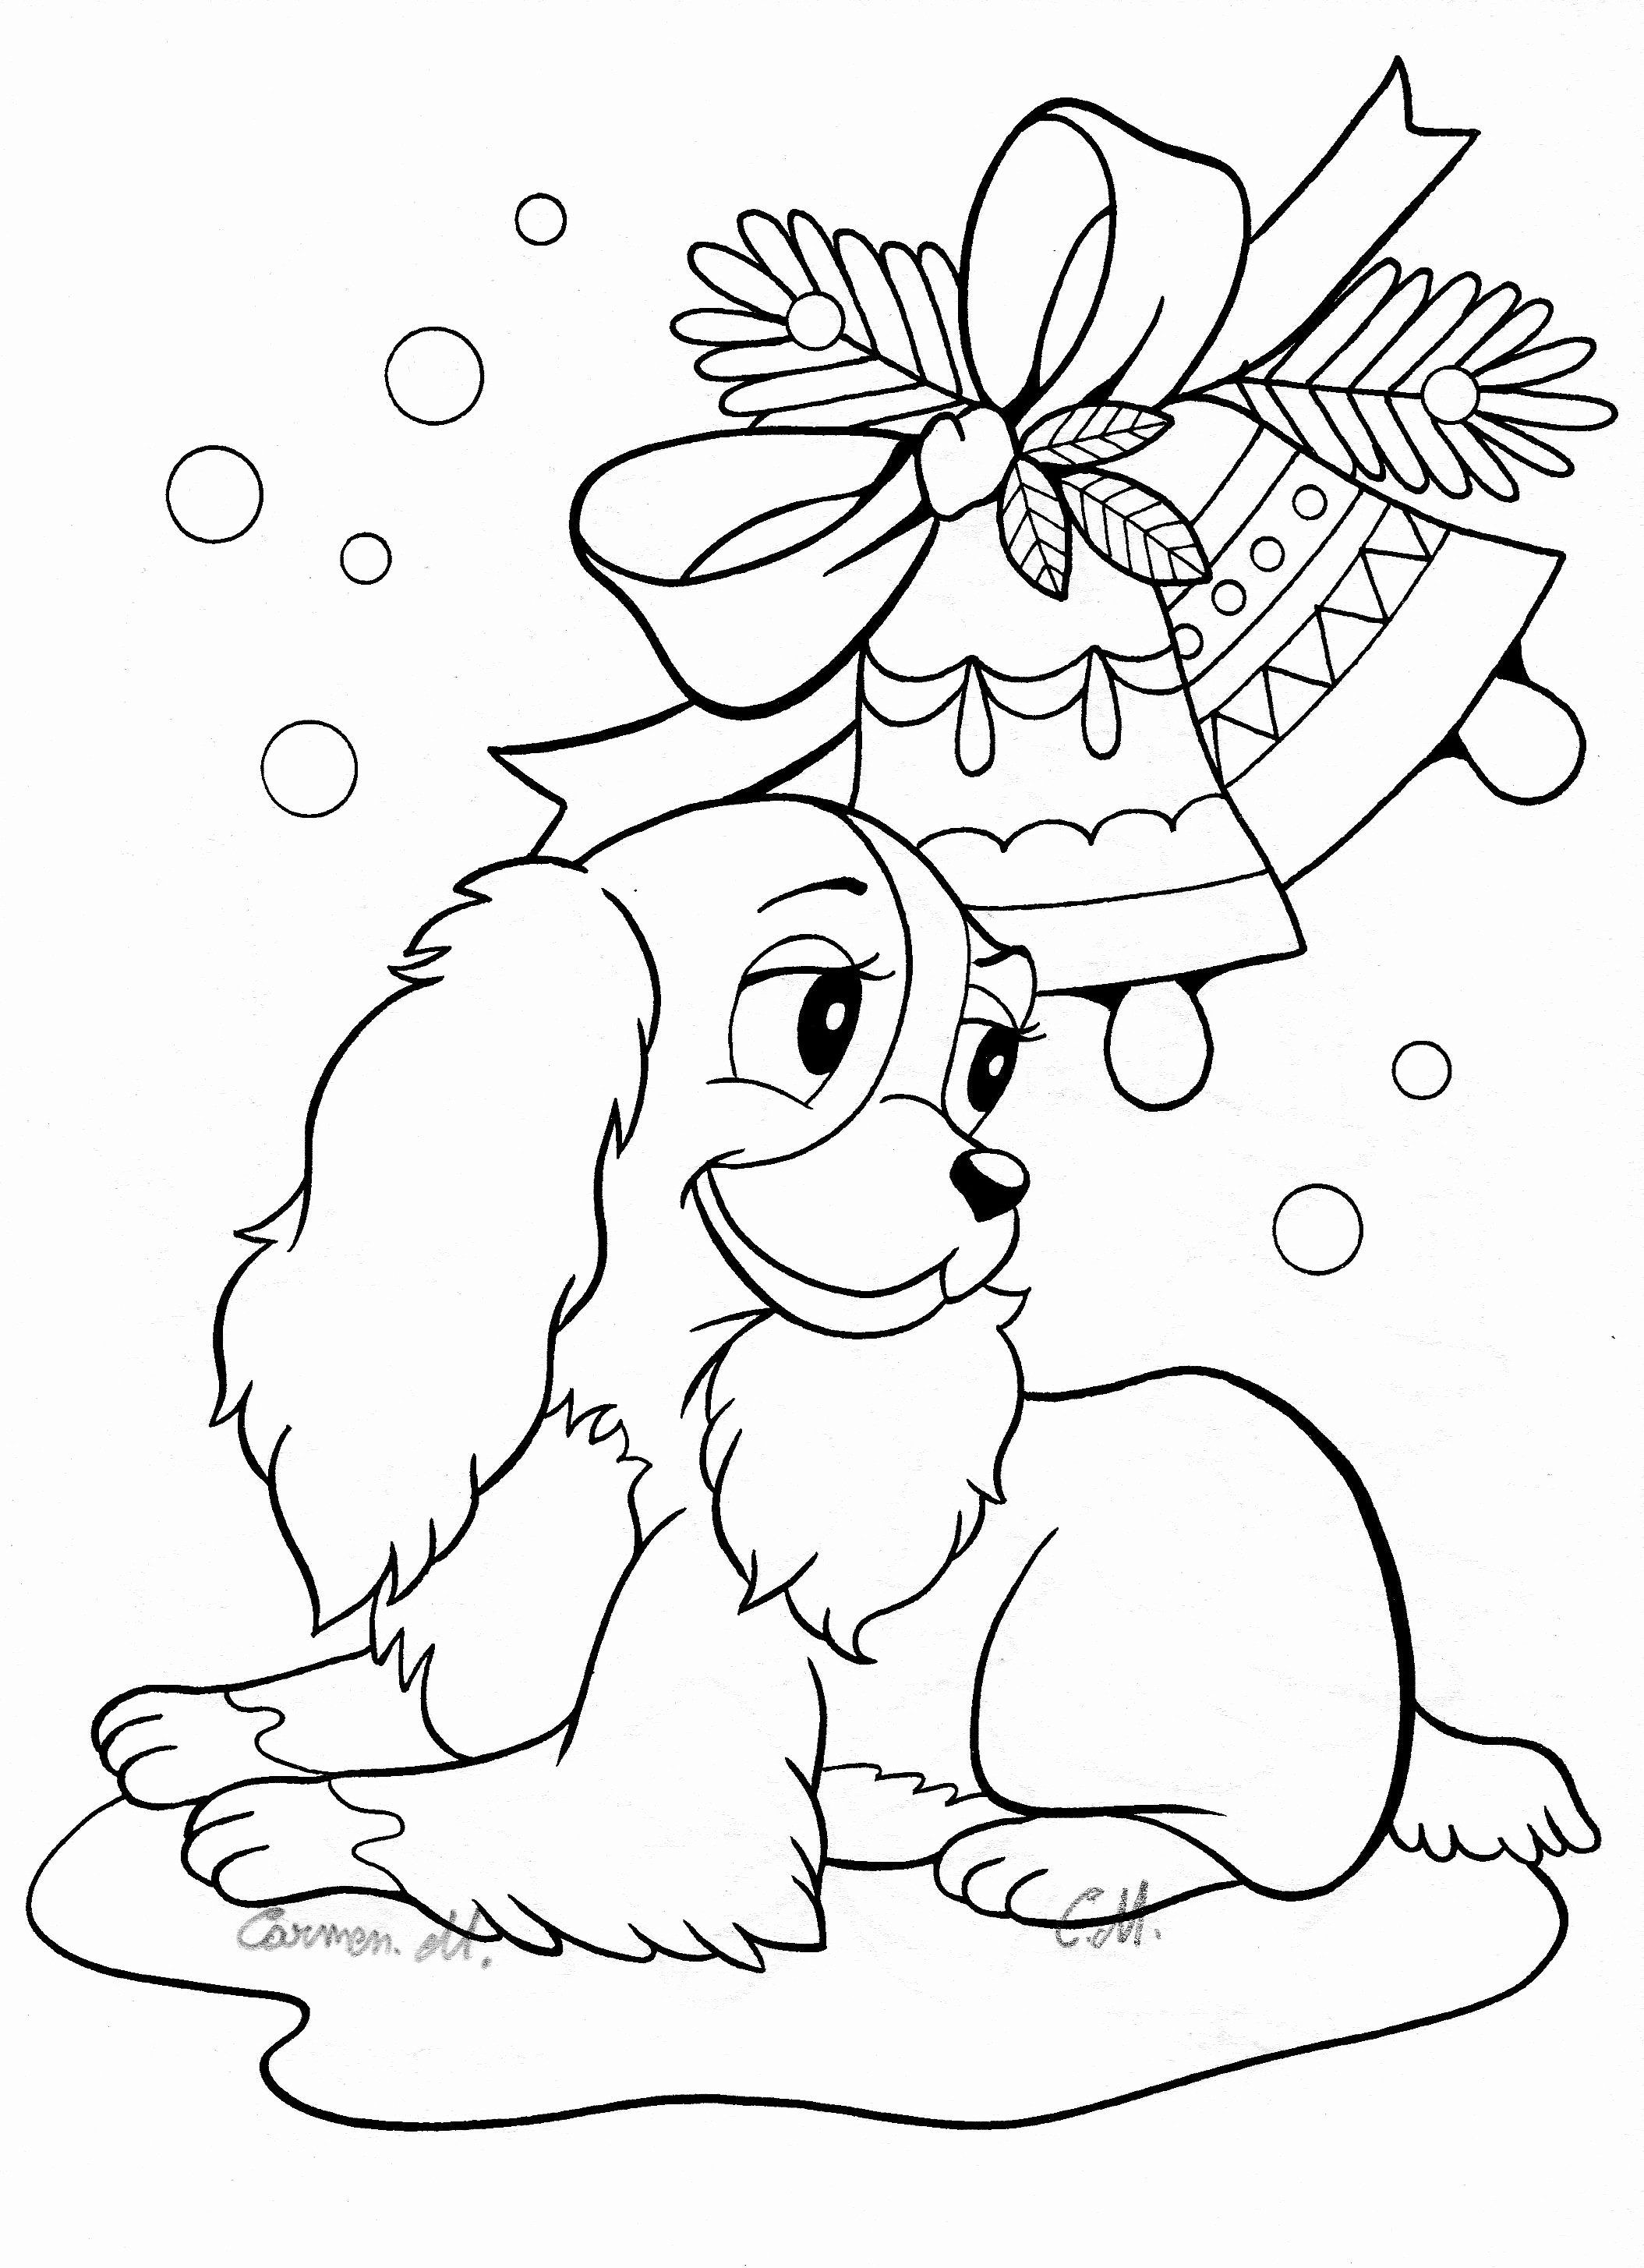 Puppy Dog Coloring Pages Puppy Dog Face Coloring Pages New Free Dog Coloring Pages New Dog